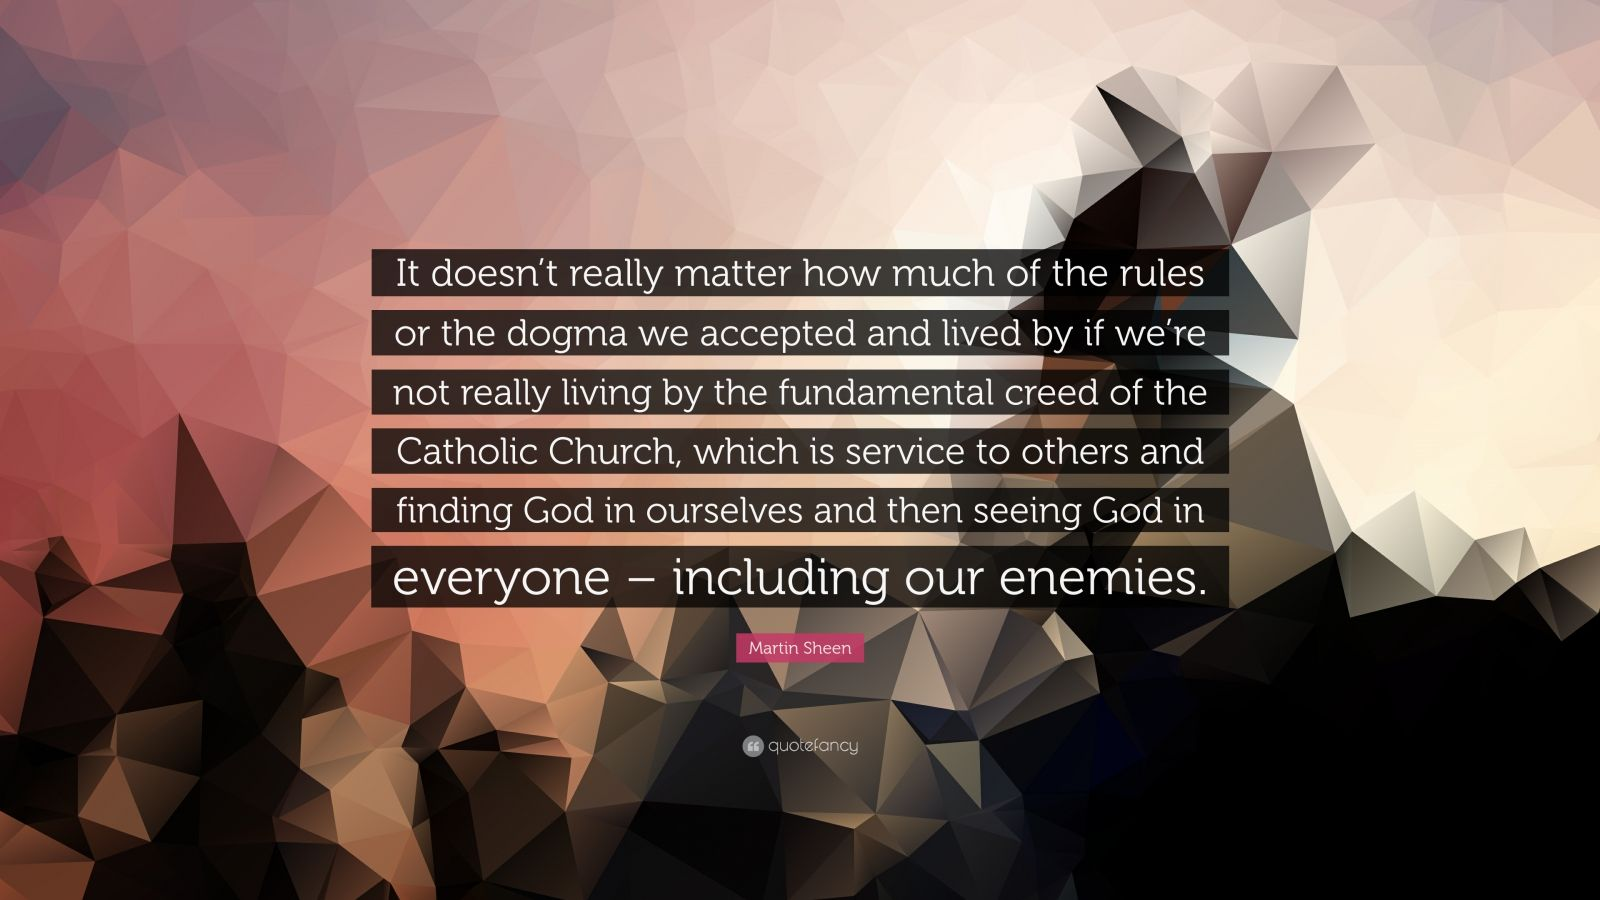 """Martin Sheen Quote: """"It doesn't really matter how much of the rules or the dogma we accepted and lived by if we're not really living by the fundamental creed of the Catholic Church, which is service to others and finding God in ourselves and then seeing God in everyone – including our enemies."""""""